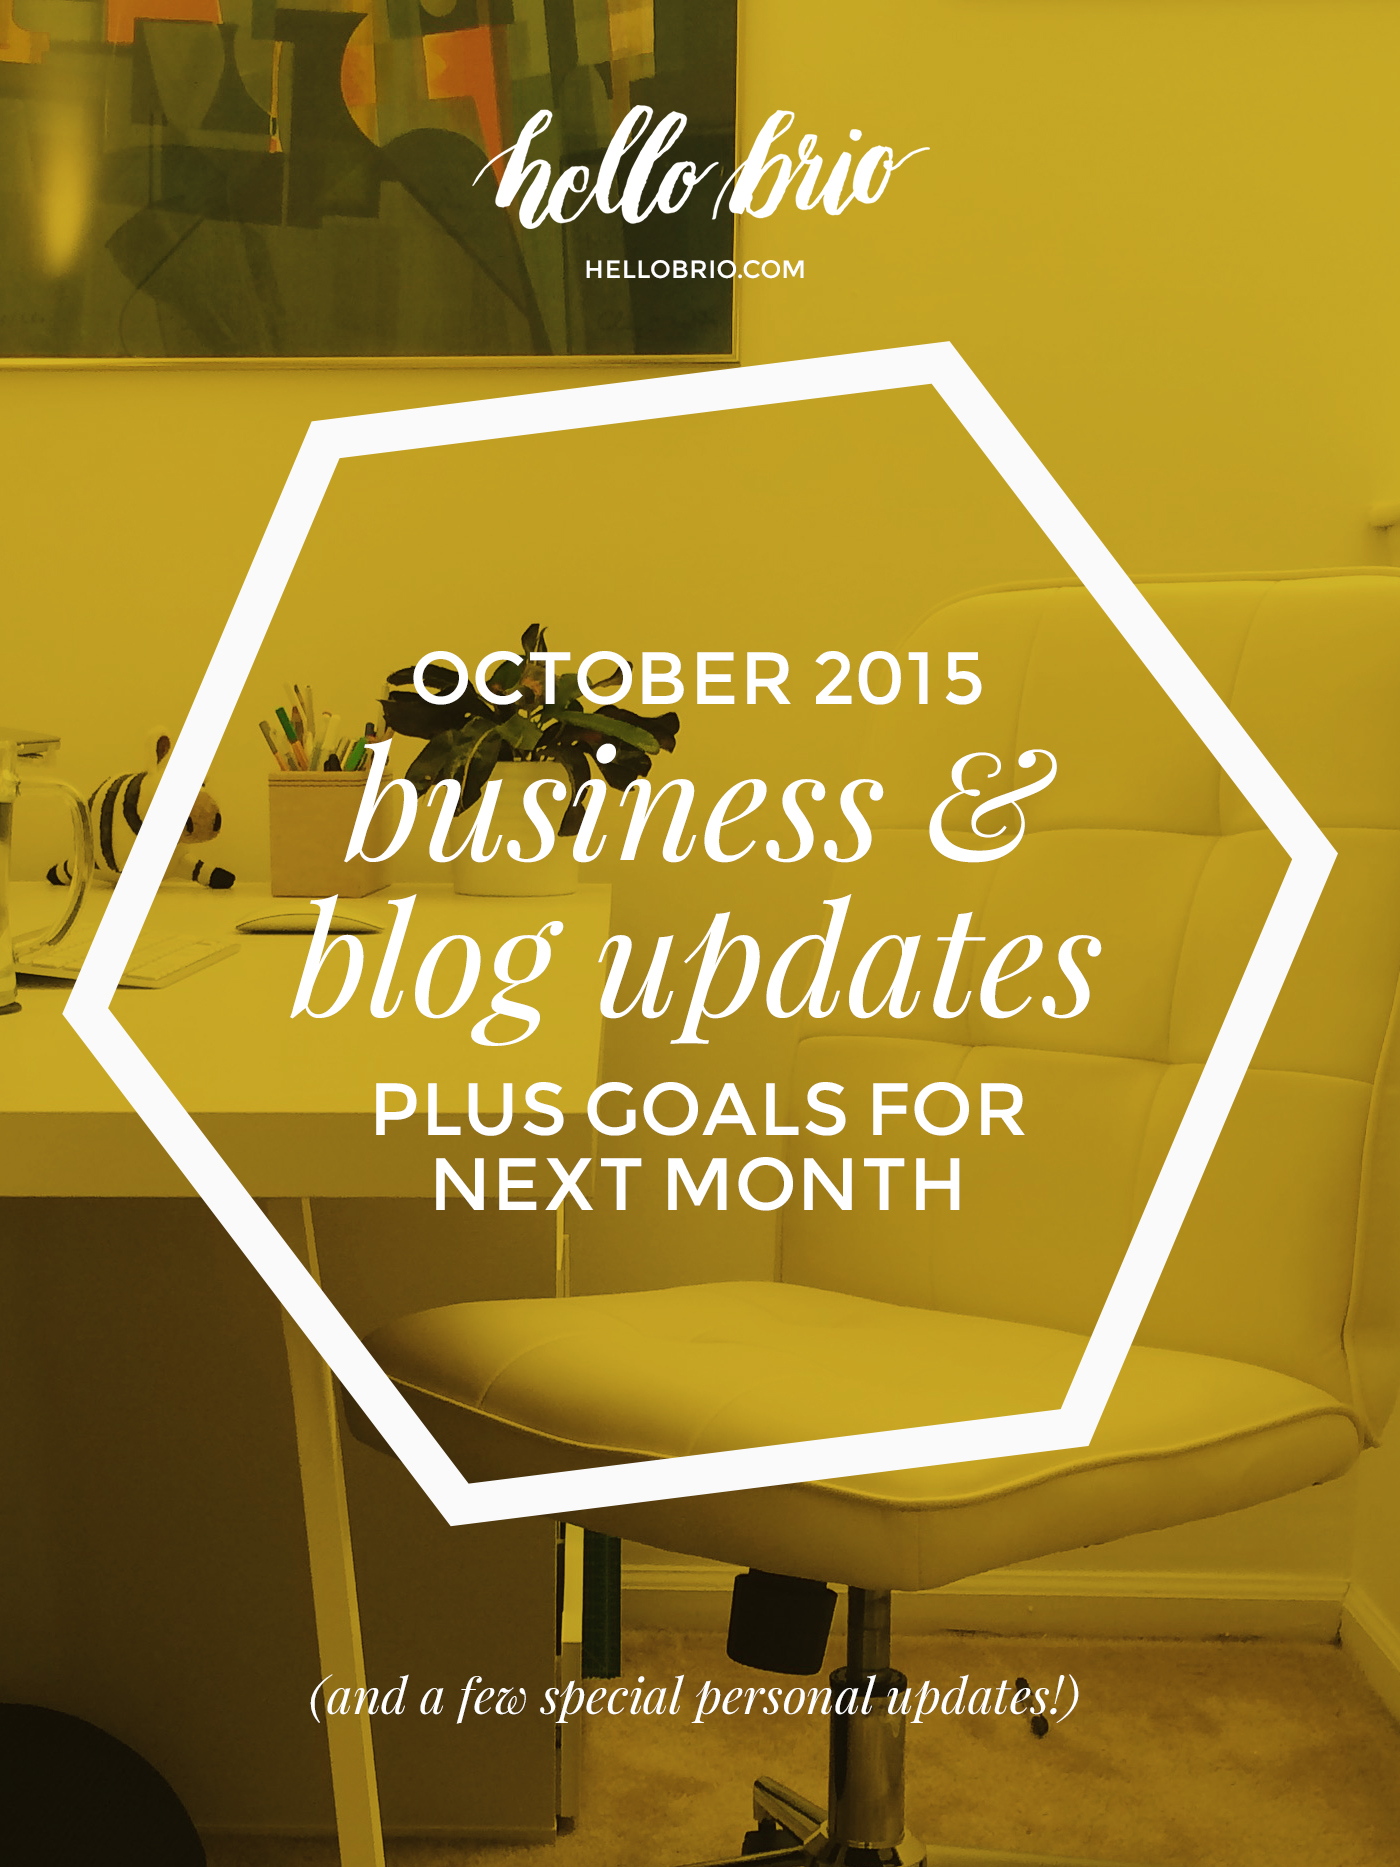 October 2015 business and blog updates plus goals for next month